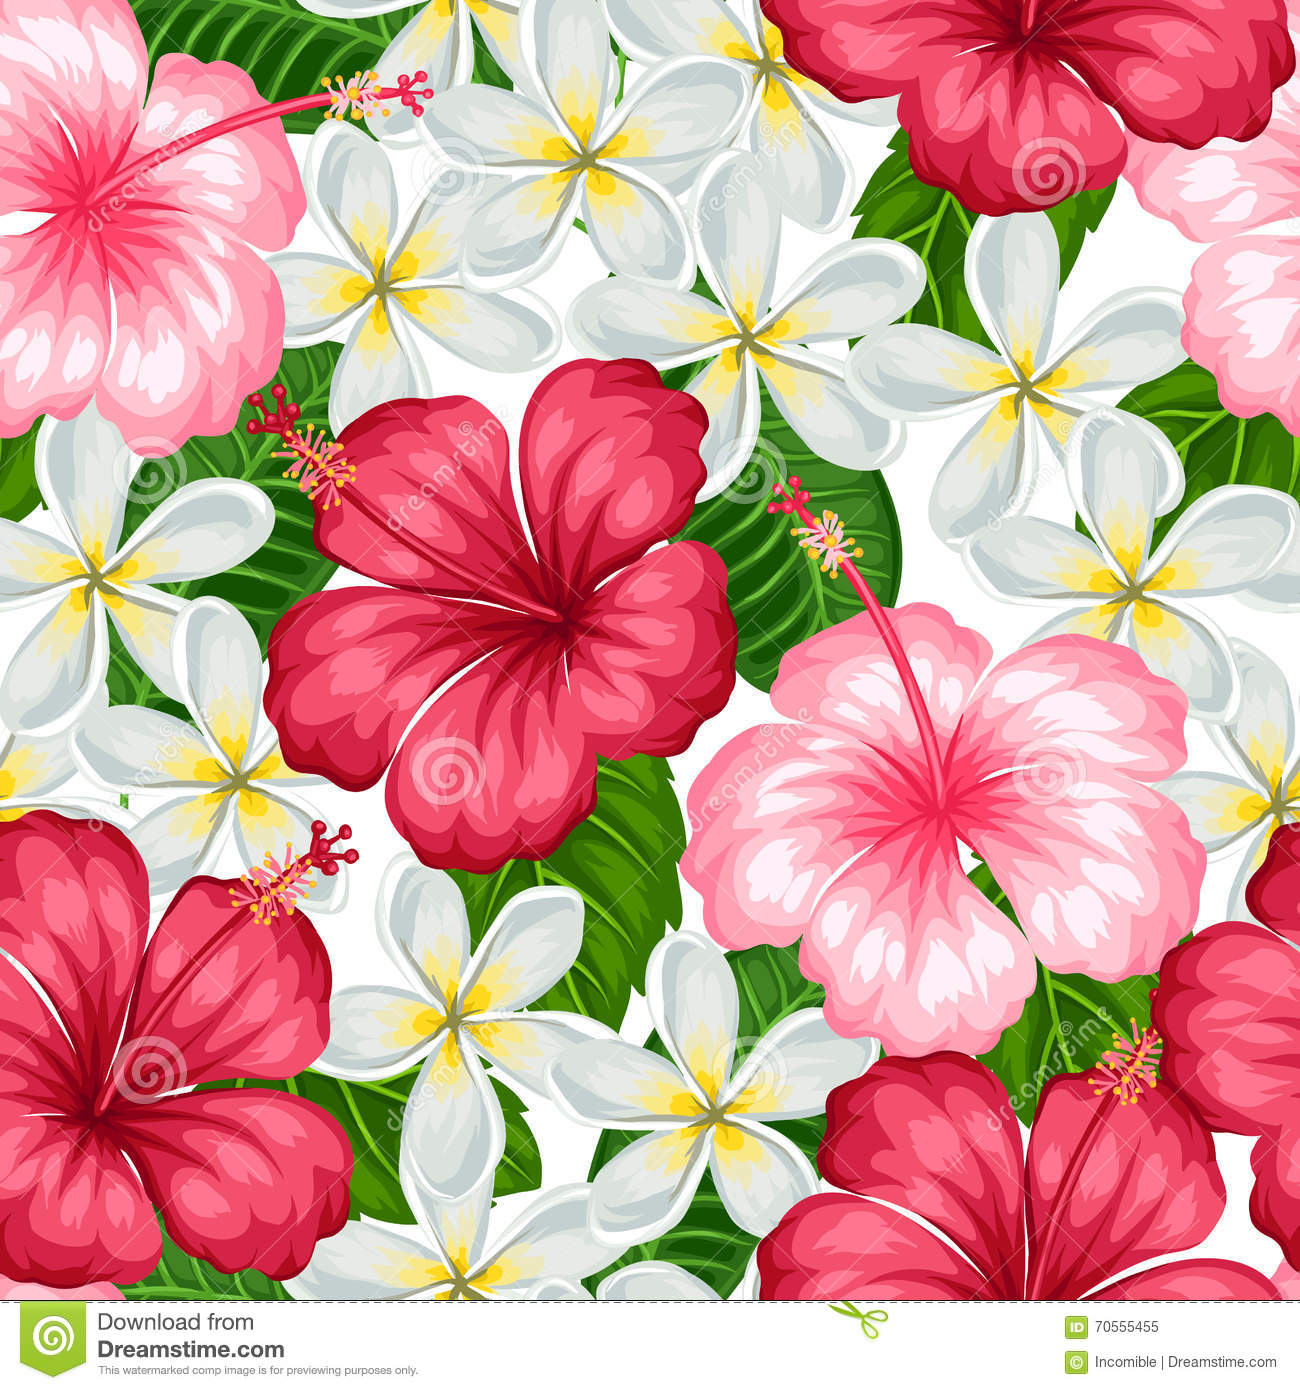 Seamless pattern with tropical flowers hibiscus and plumeria seamless pattern with tropical flowers hibiscus and plumeria background made without clipping mask easy to use fabric decorative izmirmasajfo